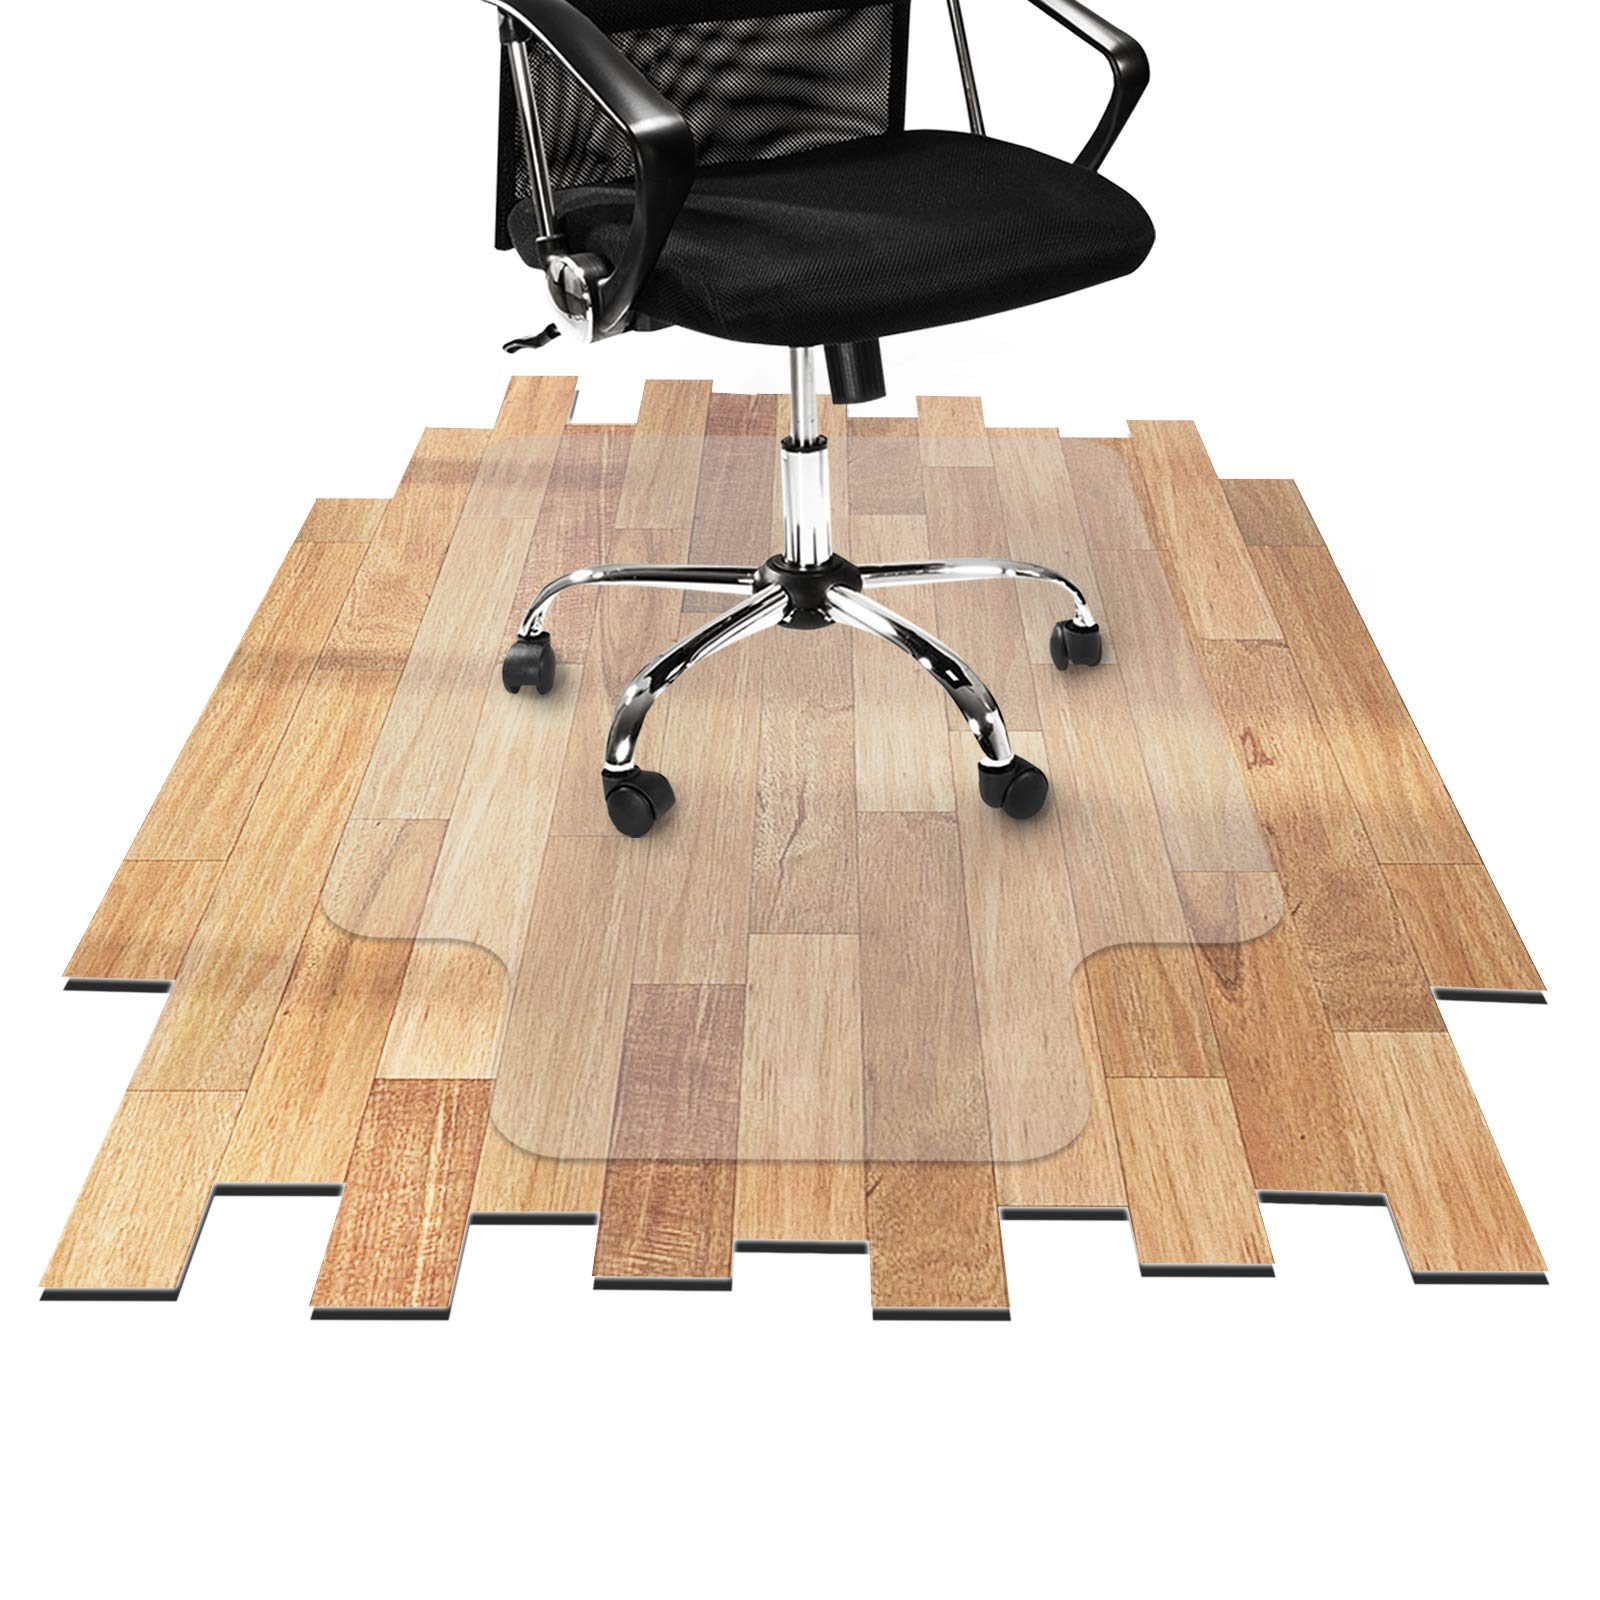 Desk Chair Mat for Hardwood Floor - Hard Floor Protection Mat for Office & Home | Many Sizes Available | Clear - 30'' x 48'' with Lip